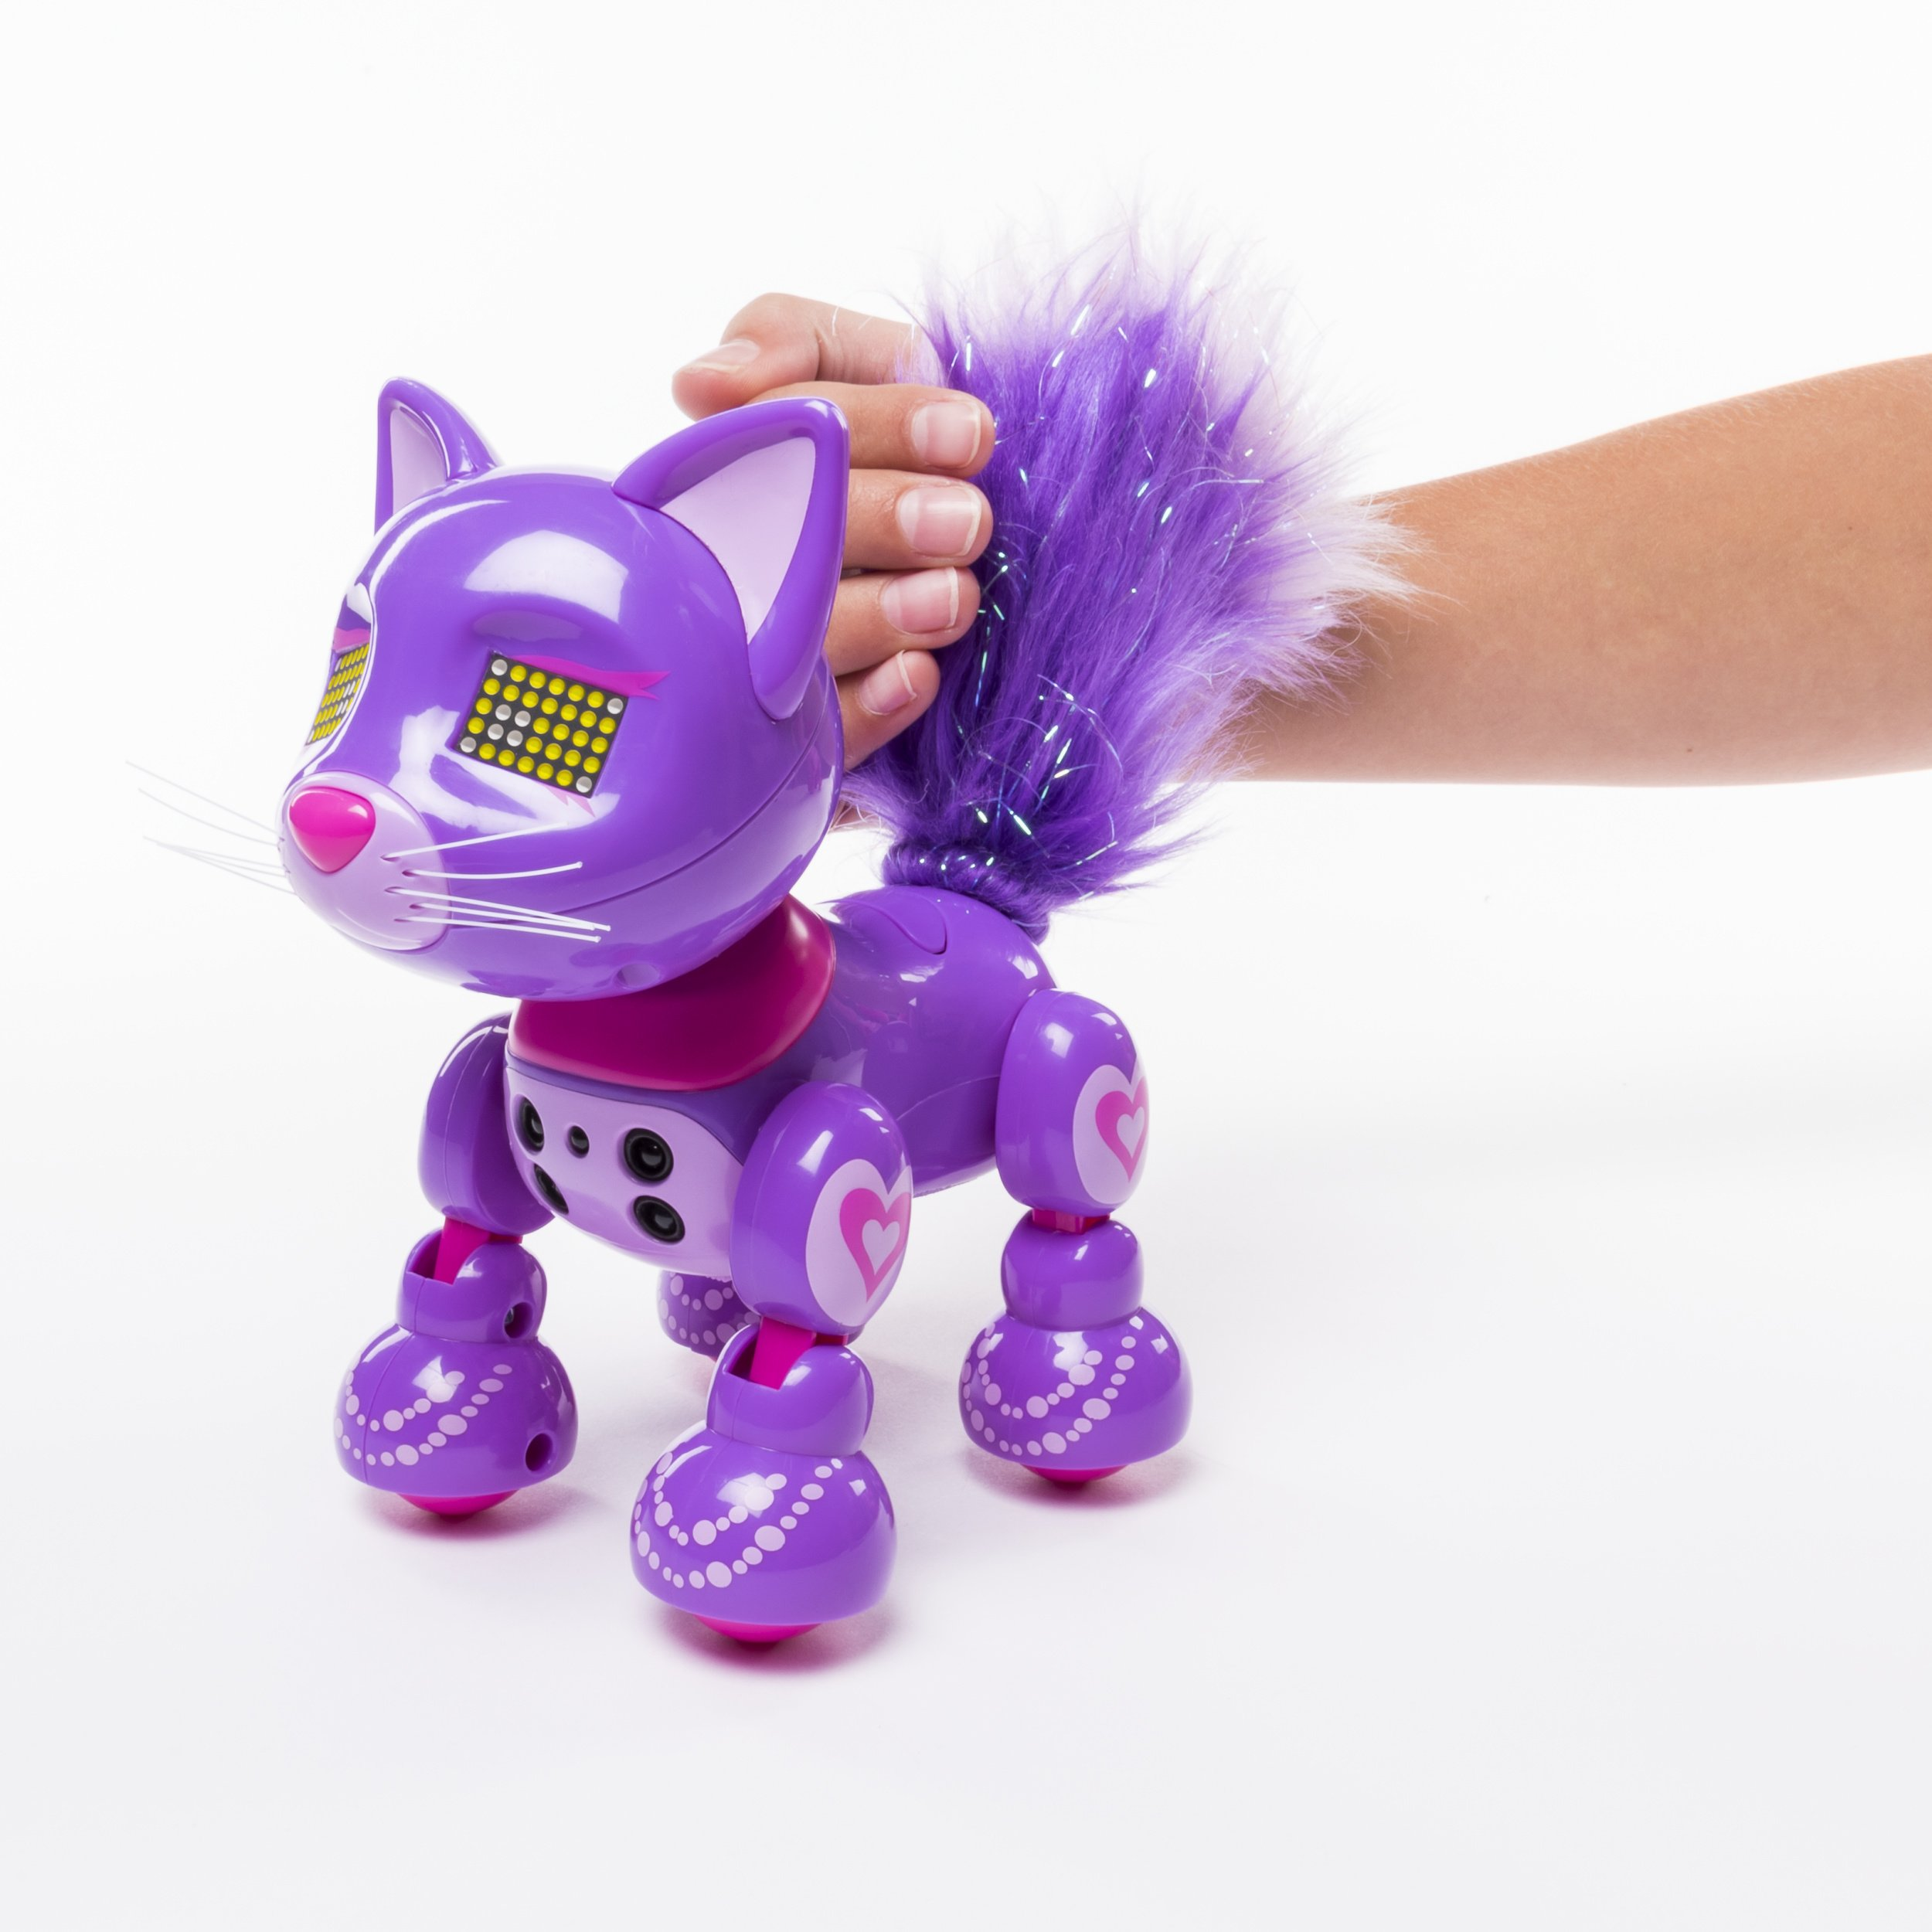 Zoomer Meowzies, Posh, Interactive Kitten with Lights, Sounds and Sensors by Zoomer (Image #4)